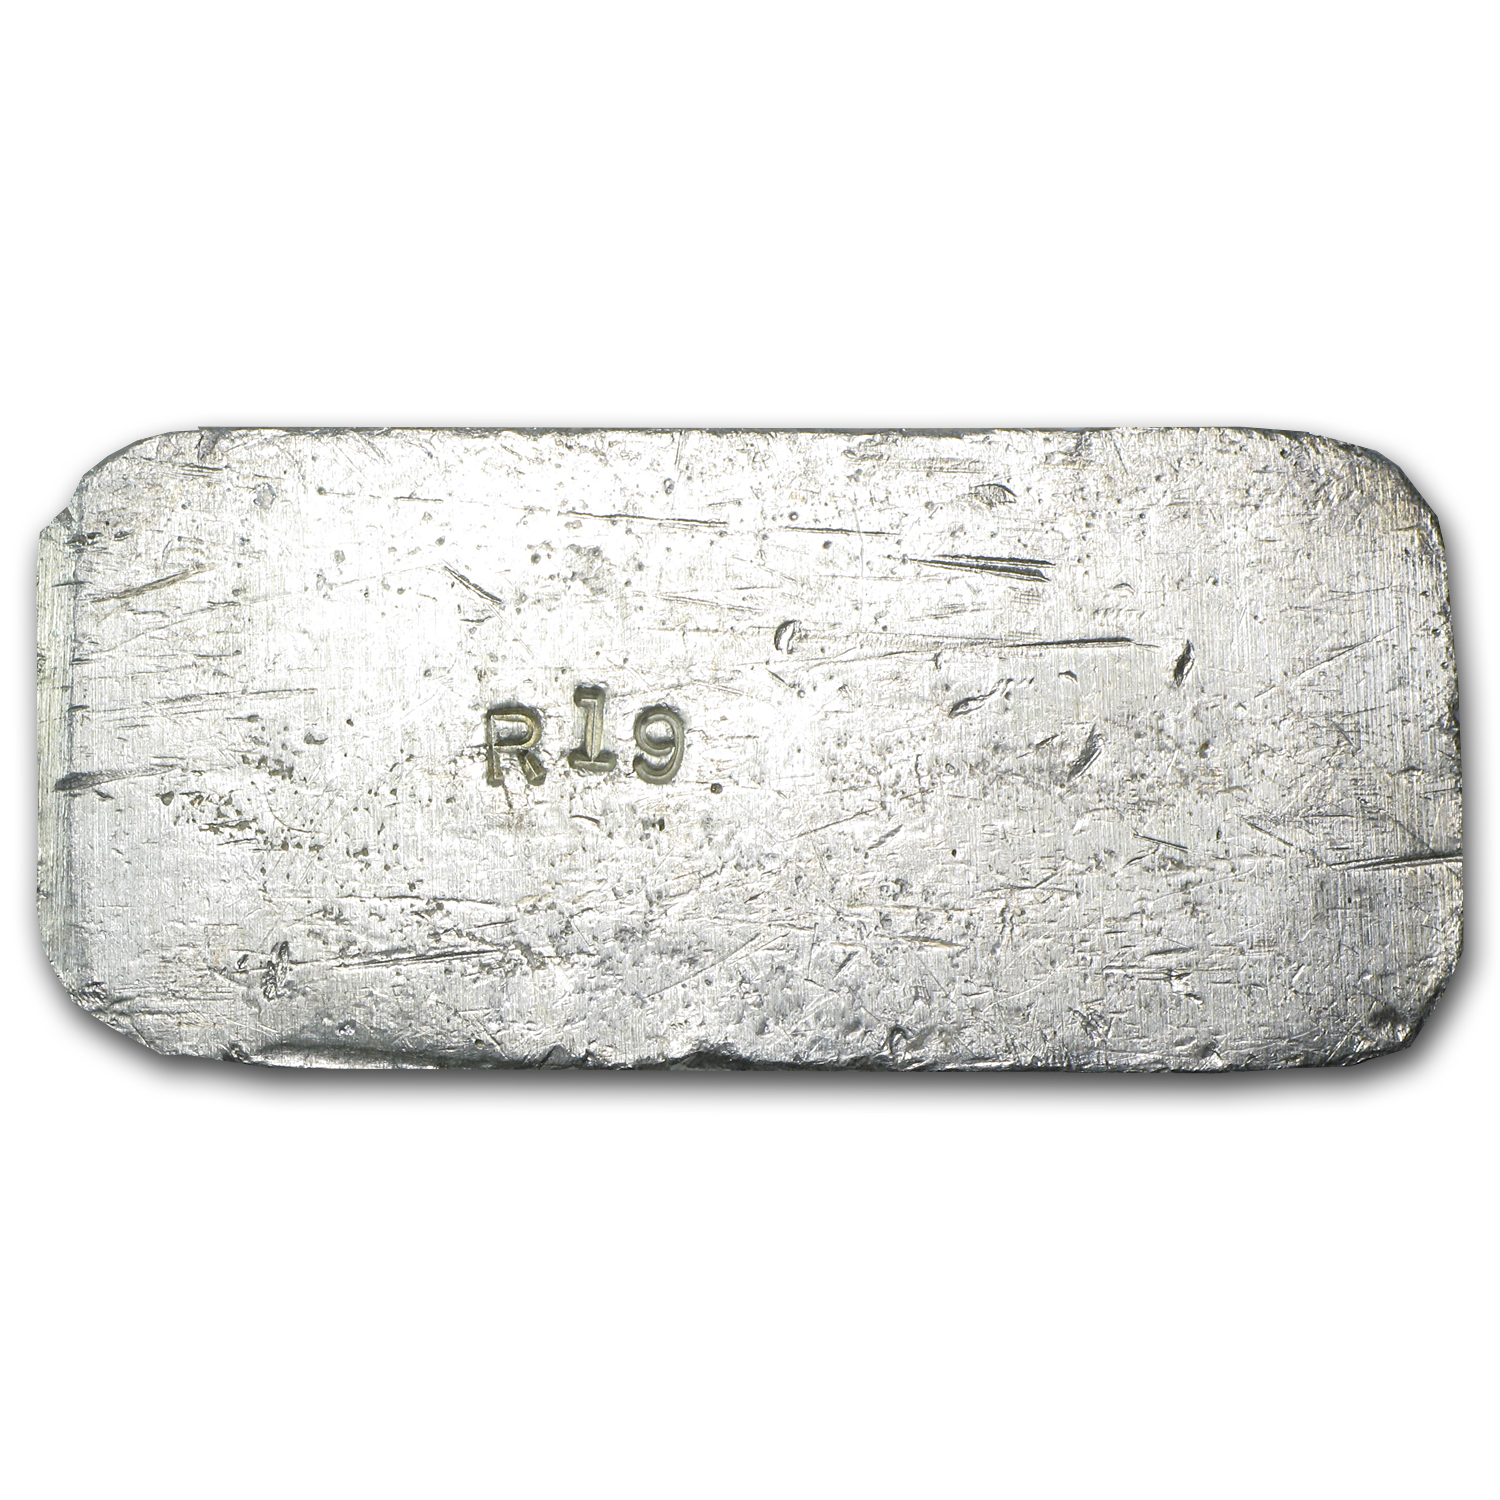 10.99 oz Silver Bar - Great Western Coin & Bullion